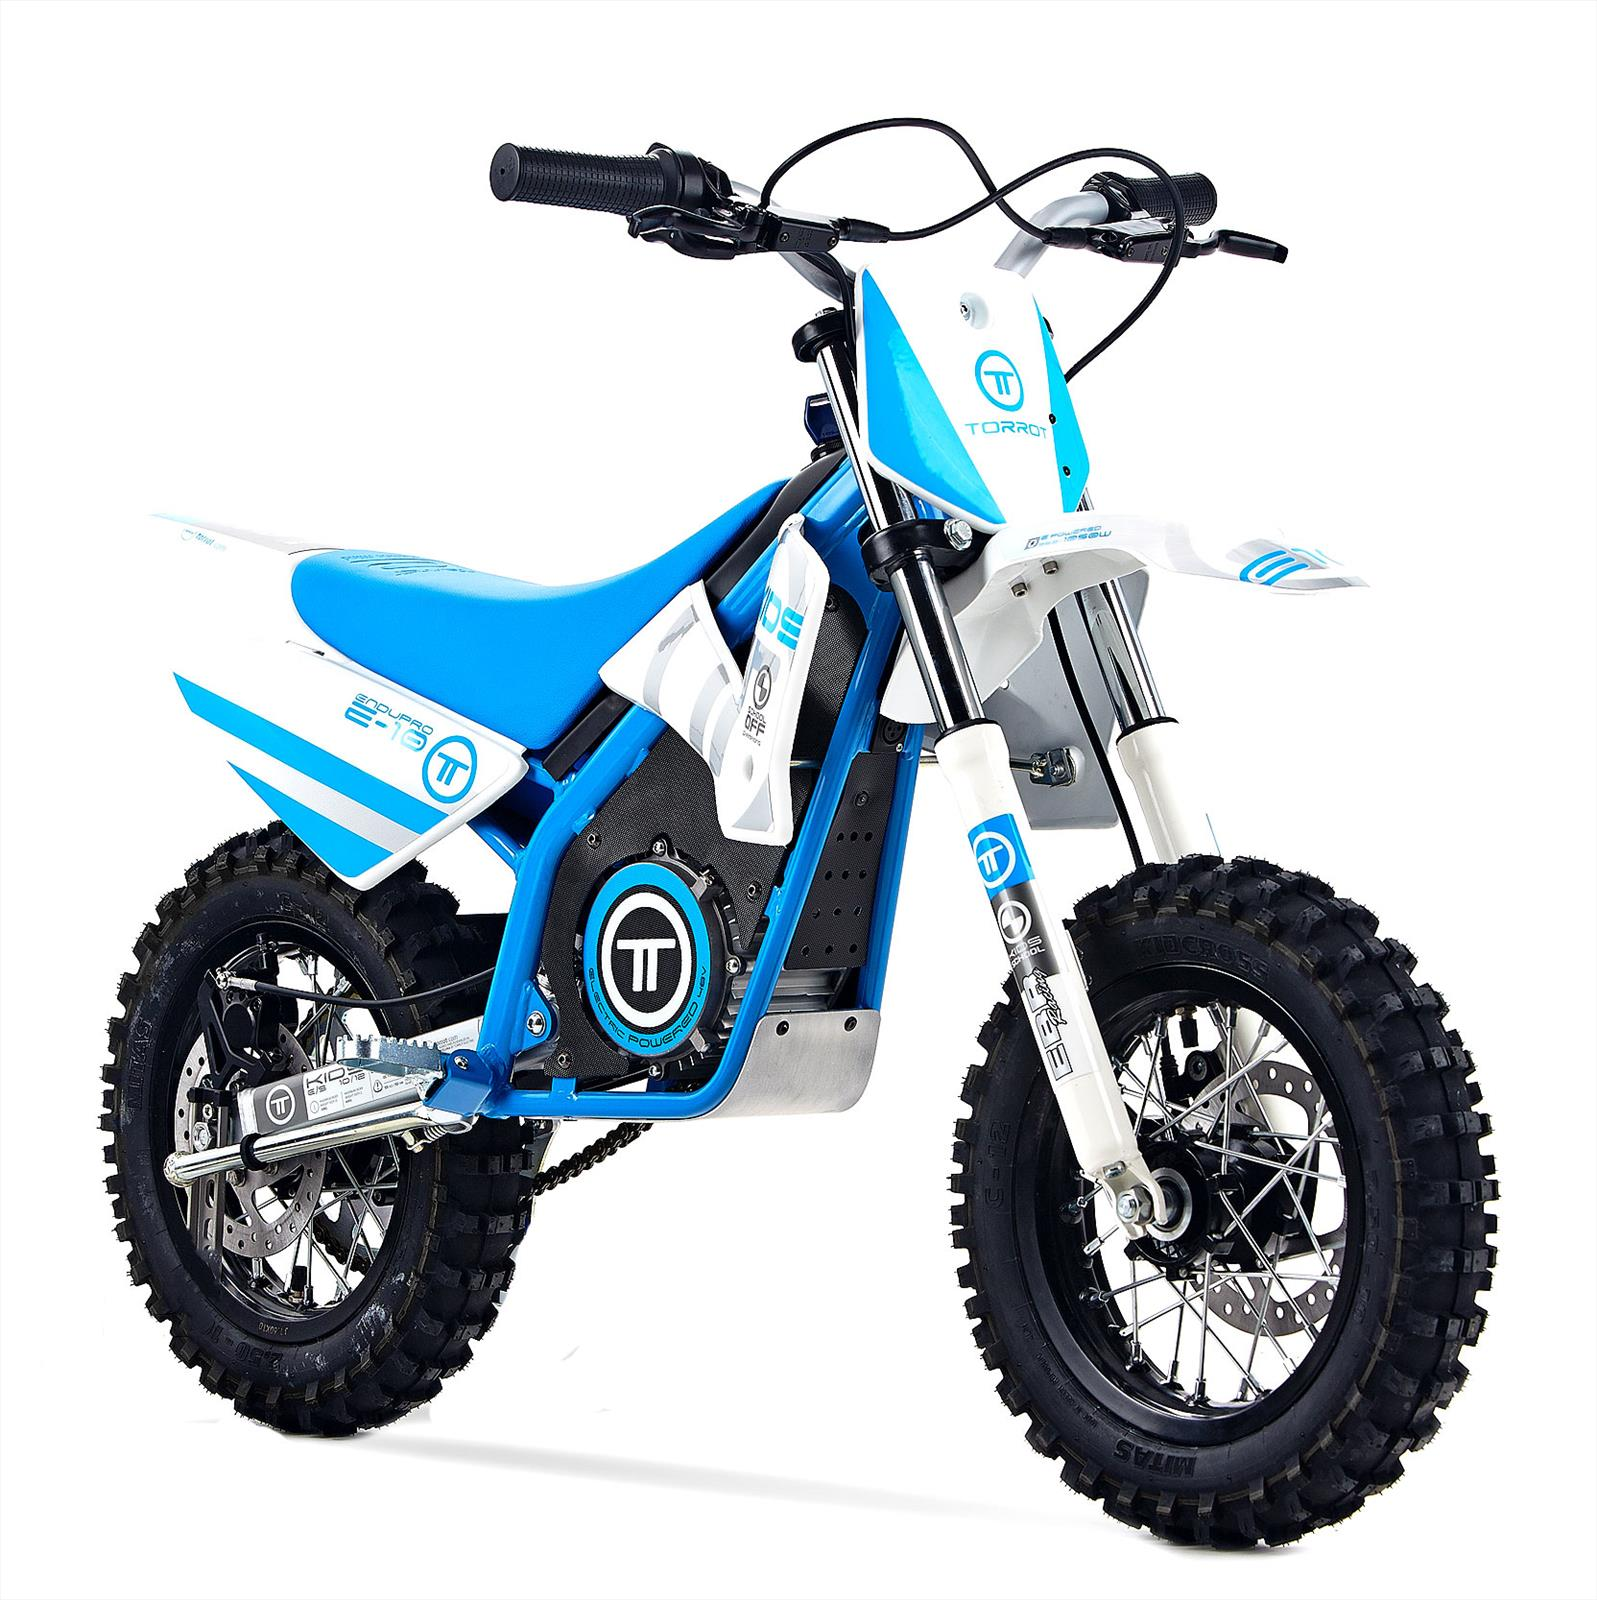 Spanish Registered Motorcycles For Sale